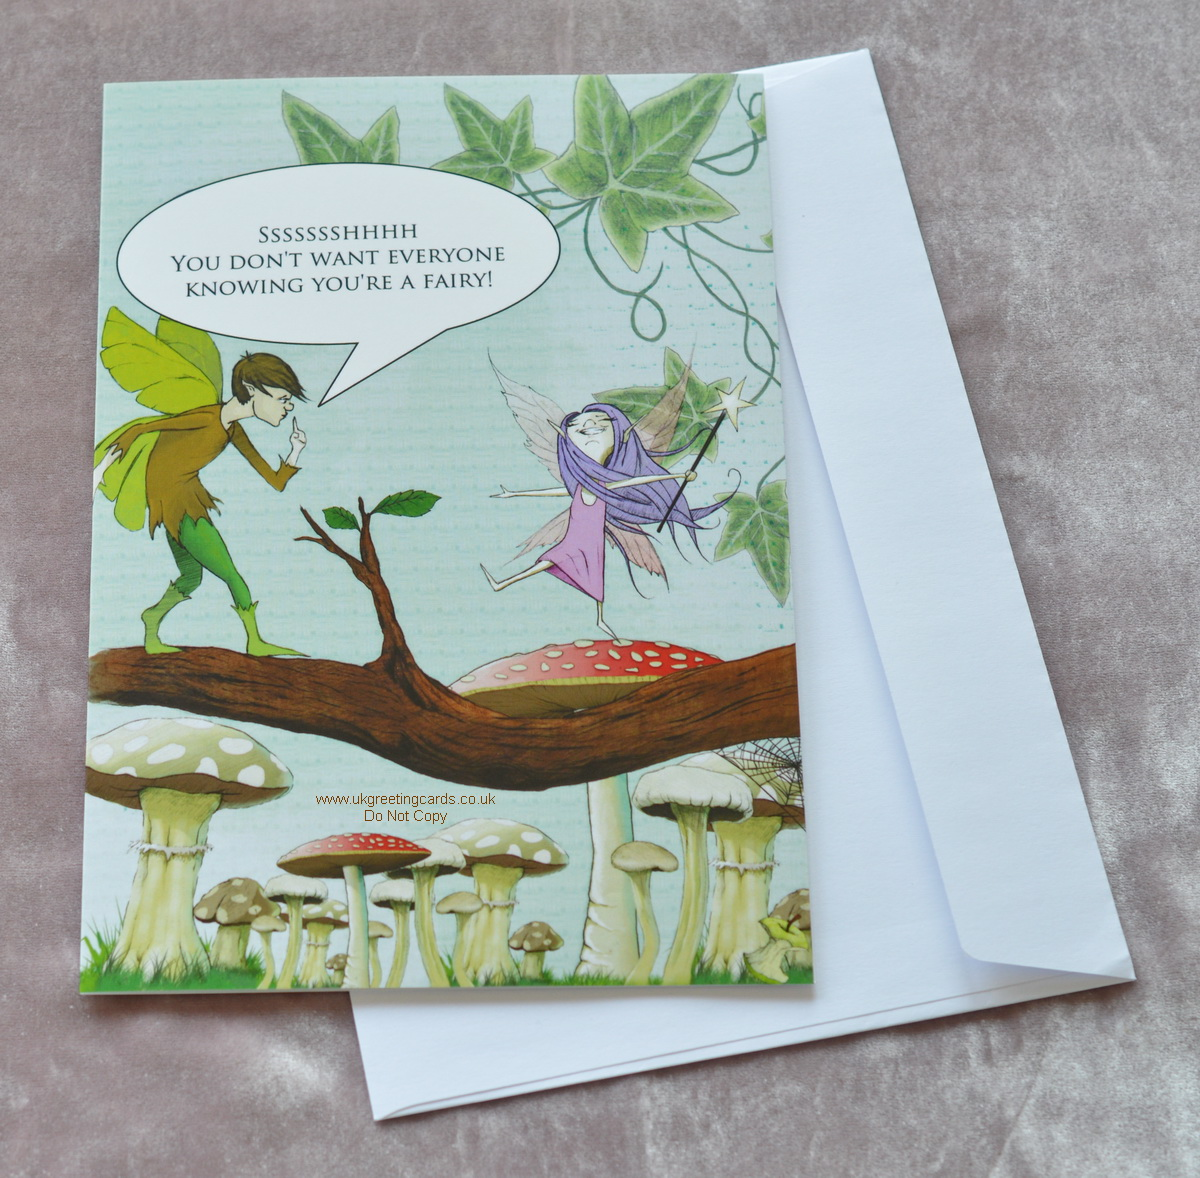 Handmade greeting cards blog pride to be cards news flash new arrival gay all occasions cards kristyandbryce Images